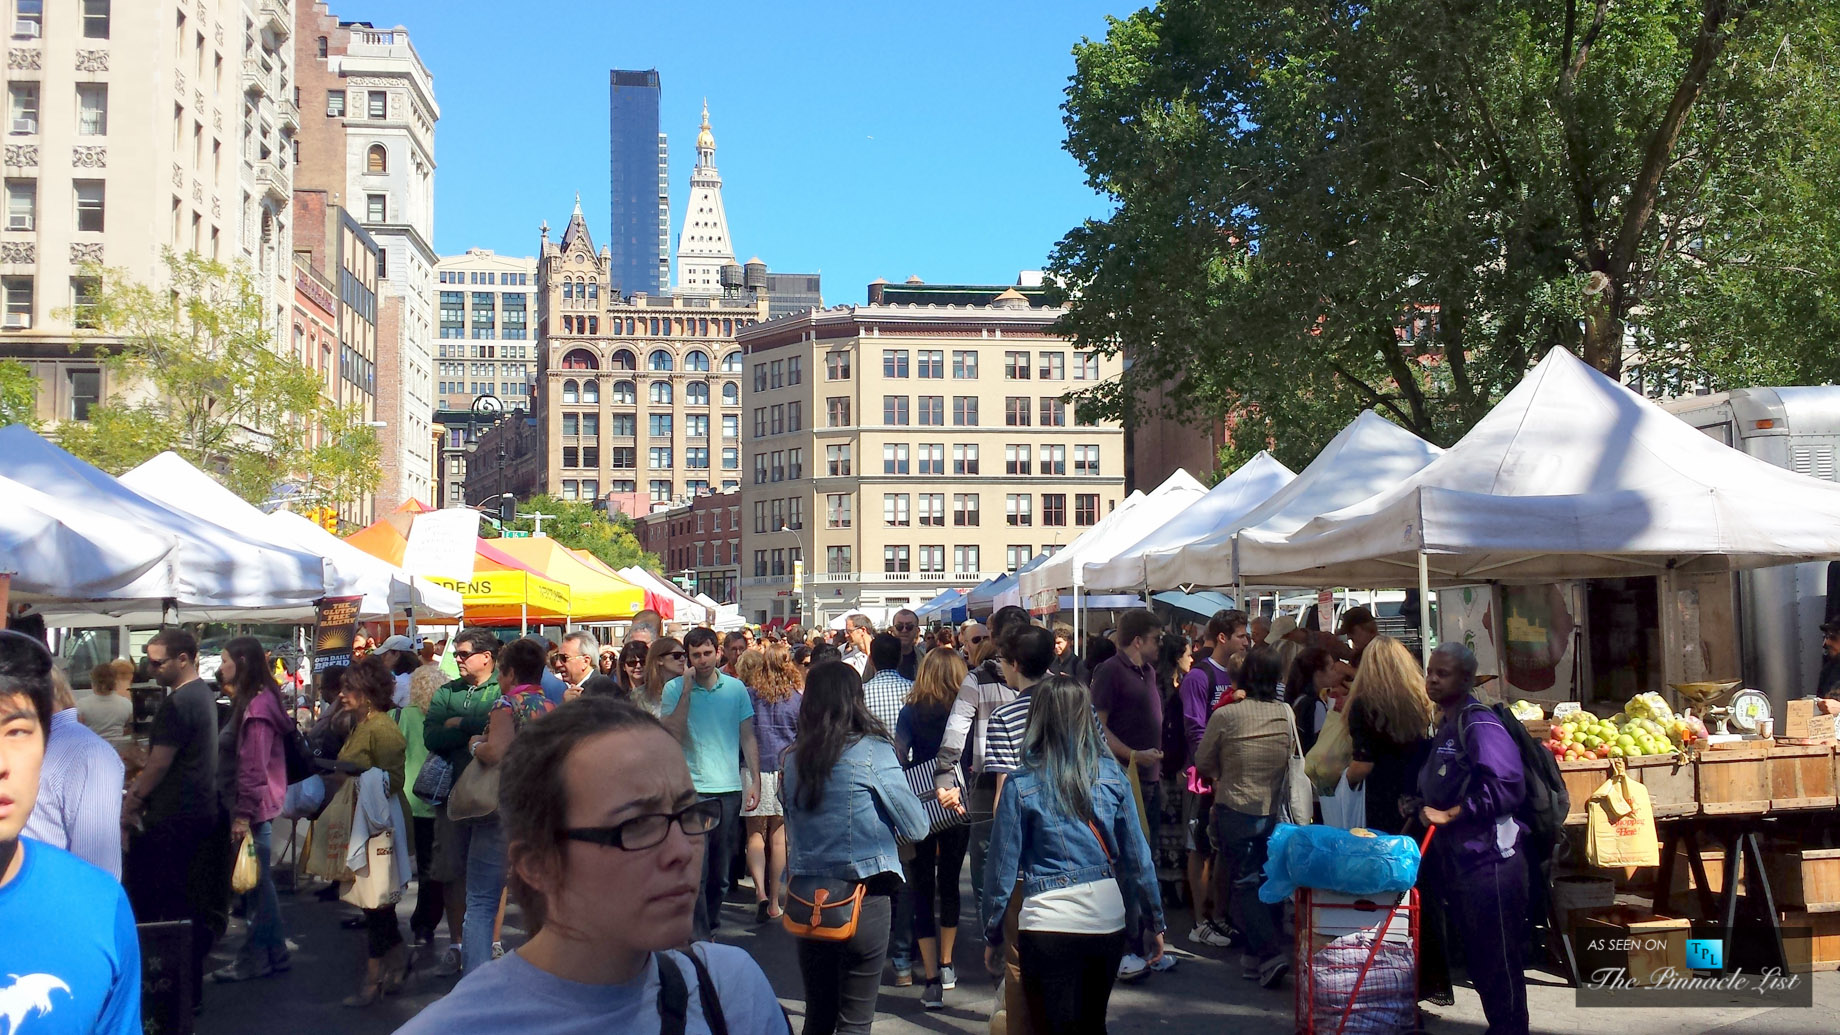 Union Square Greenmarket - Enviable New York Living - A Residents Guide to 88 and 90 Lexs Gramercy Neighborhood